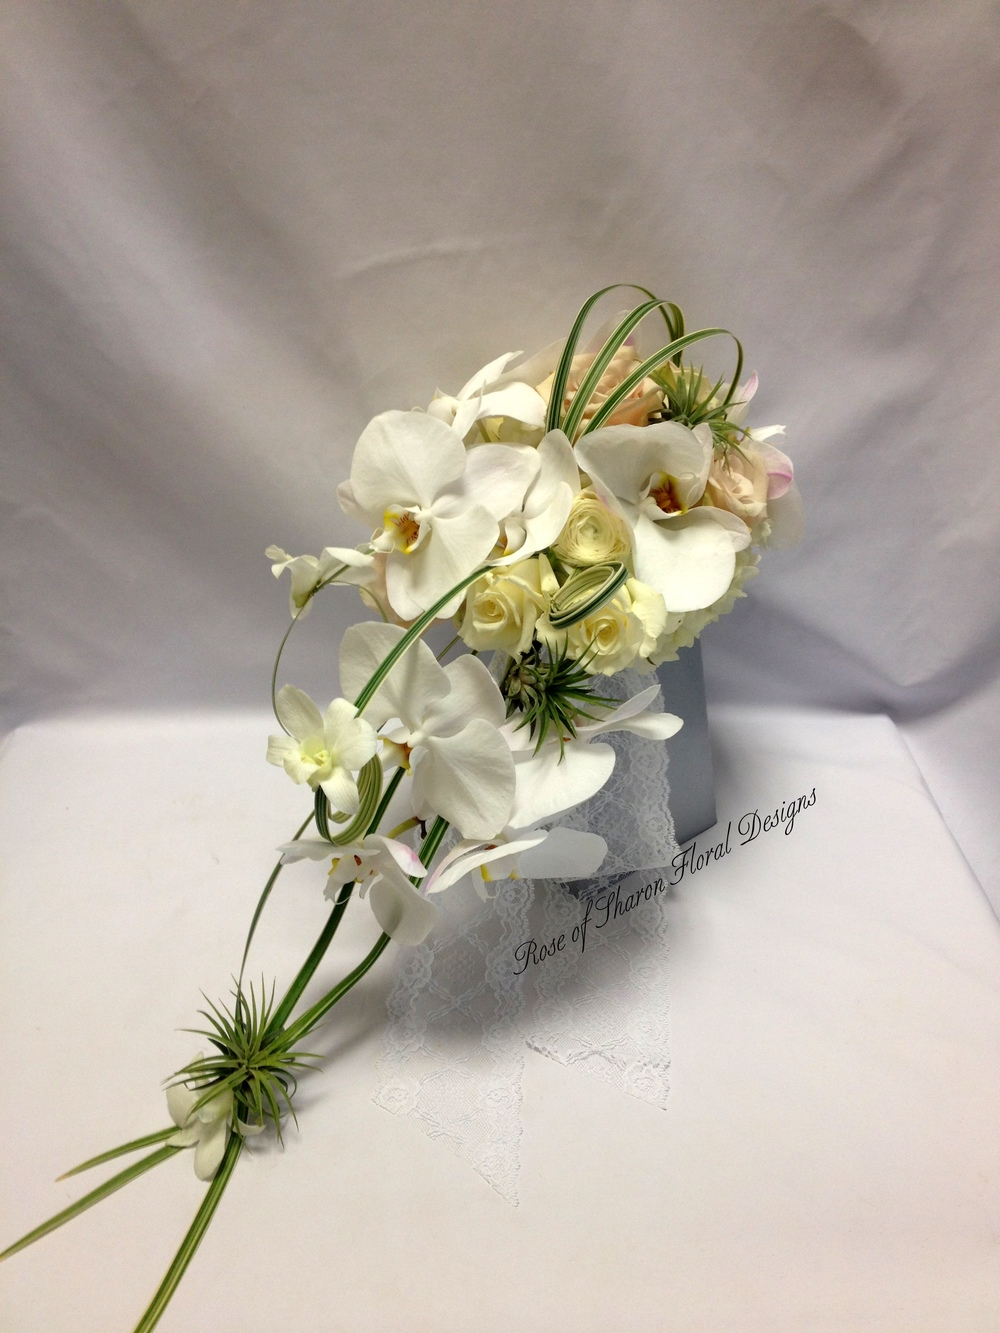 Cascading Orchid and Rose Bouquet. Rose of Sharon Floral Designs